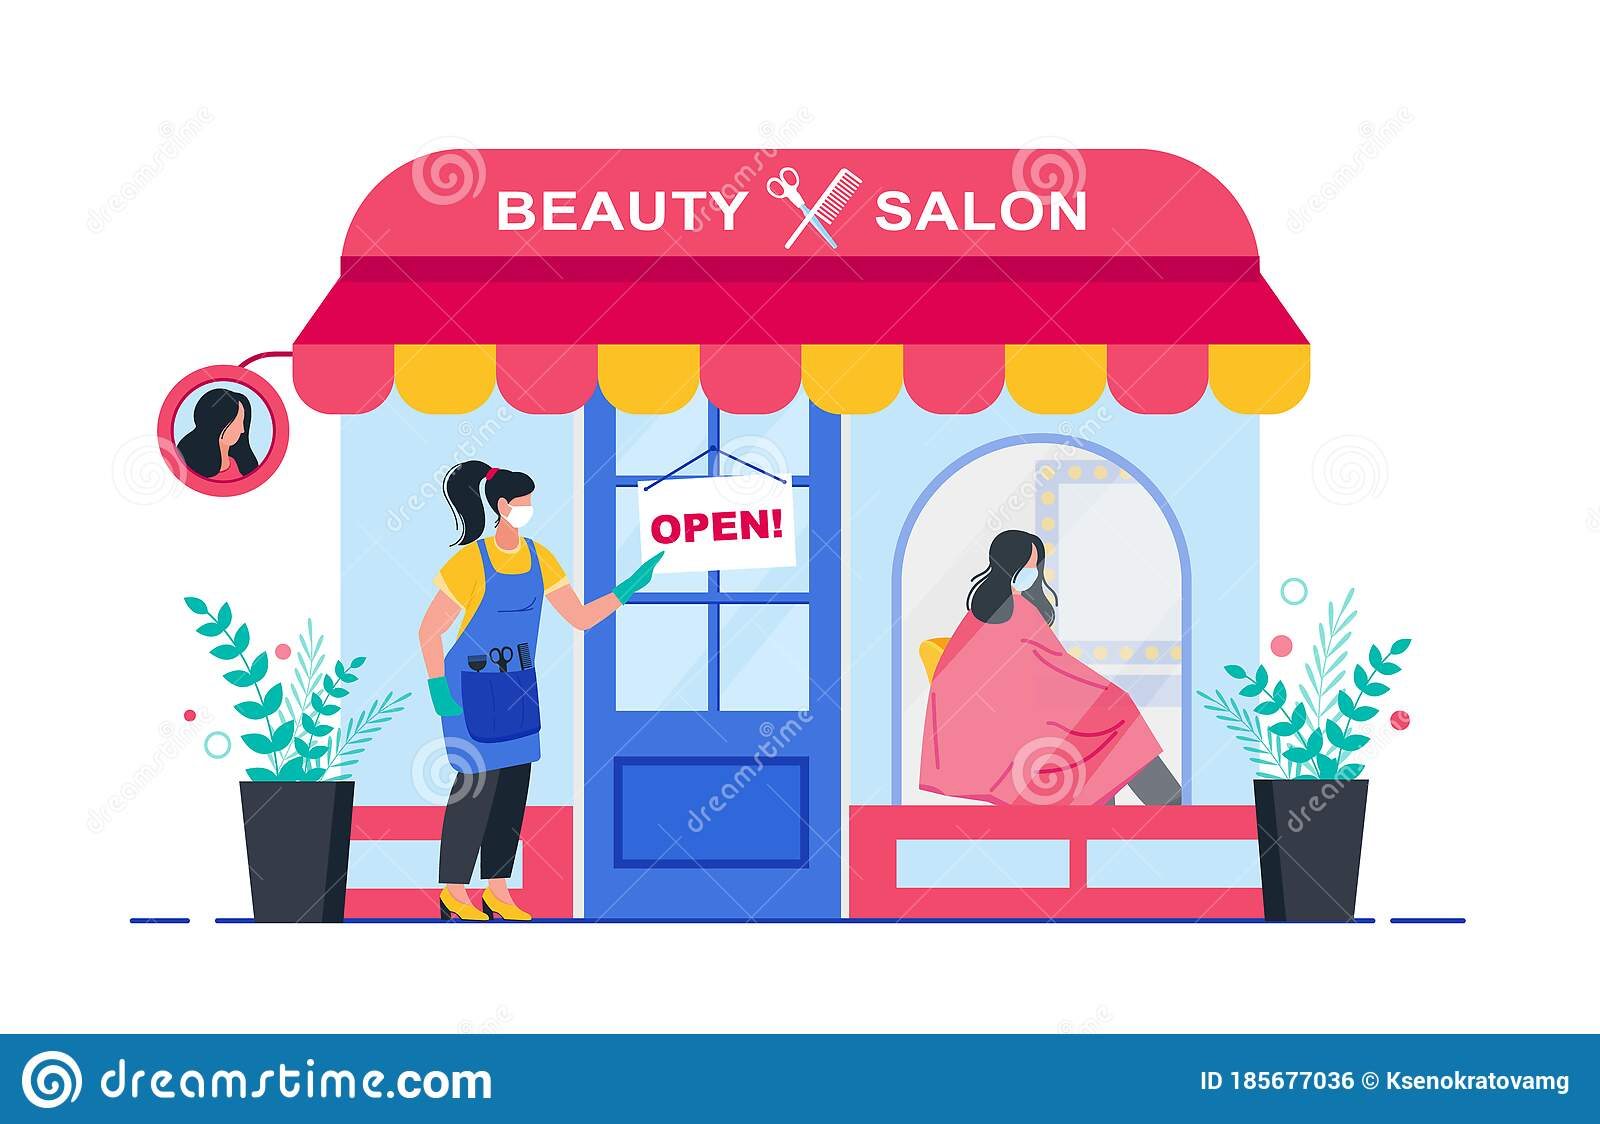 Beauty Salon Opening After Quarantine Woman Or Hairdresser Opens A Hair Salon After Quarantine Banner For A Beauty Stock Vector Illustration Of Character Care 185677036